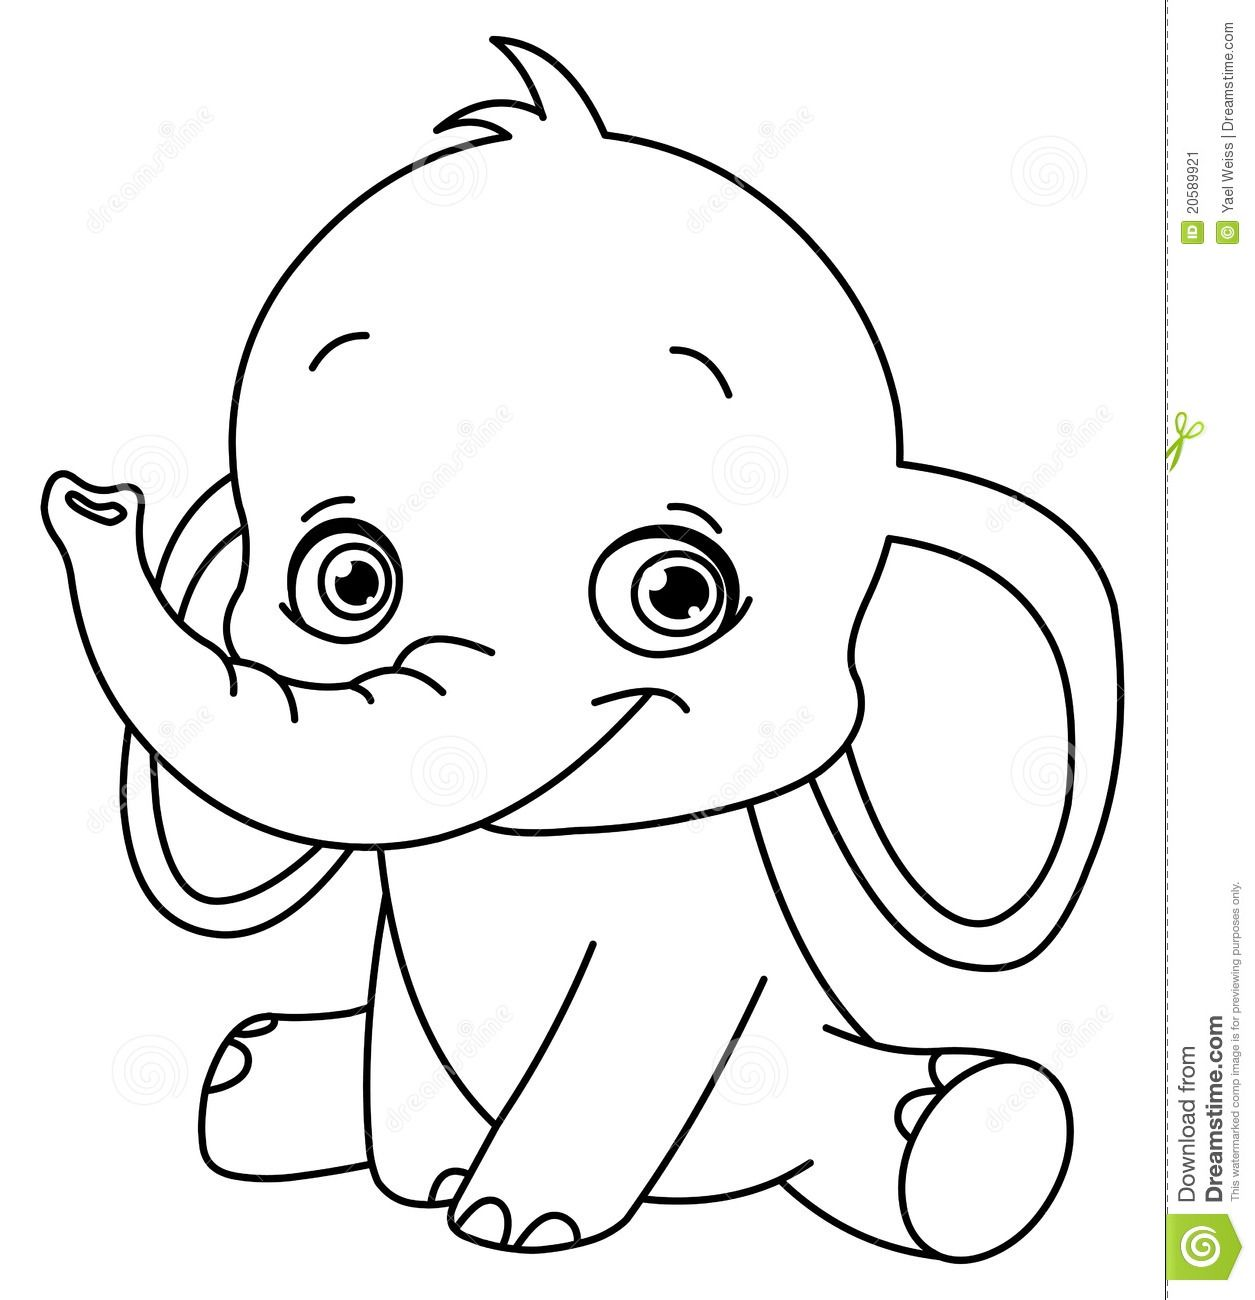 Beau Baby Elephant Coloring Pages To Download And Print For Free